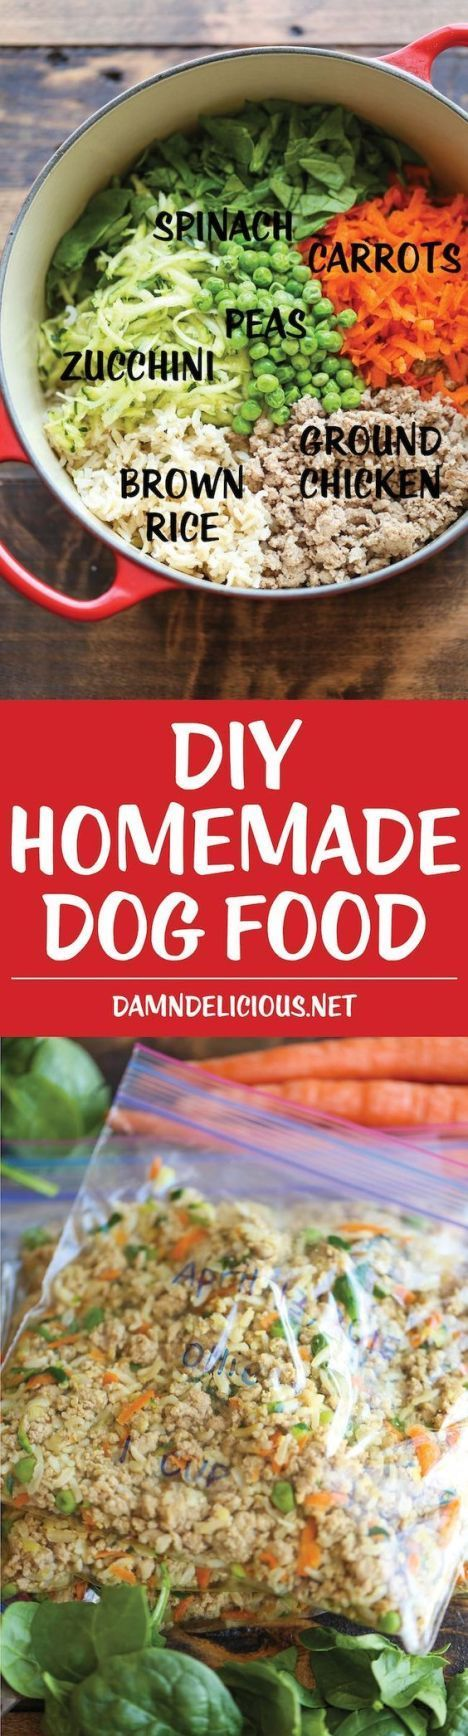 This slow cooker DIY dog food will definitely have your doggie wanting more! This wonderful blogger includes a breakdown of the nutritional requirements of dog food and provides a nourishing recipe too!